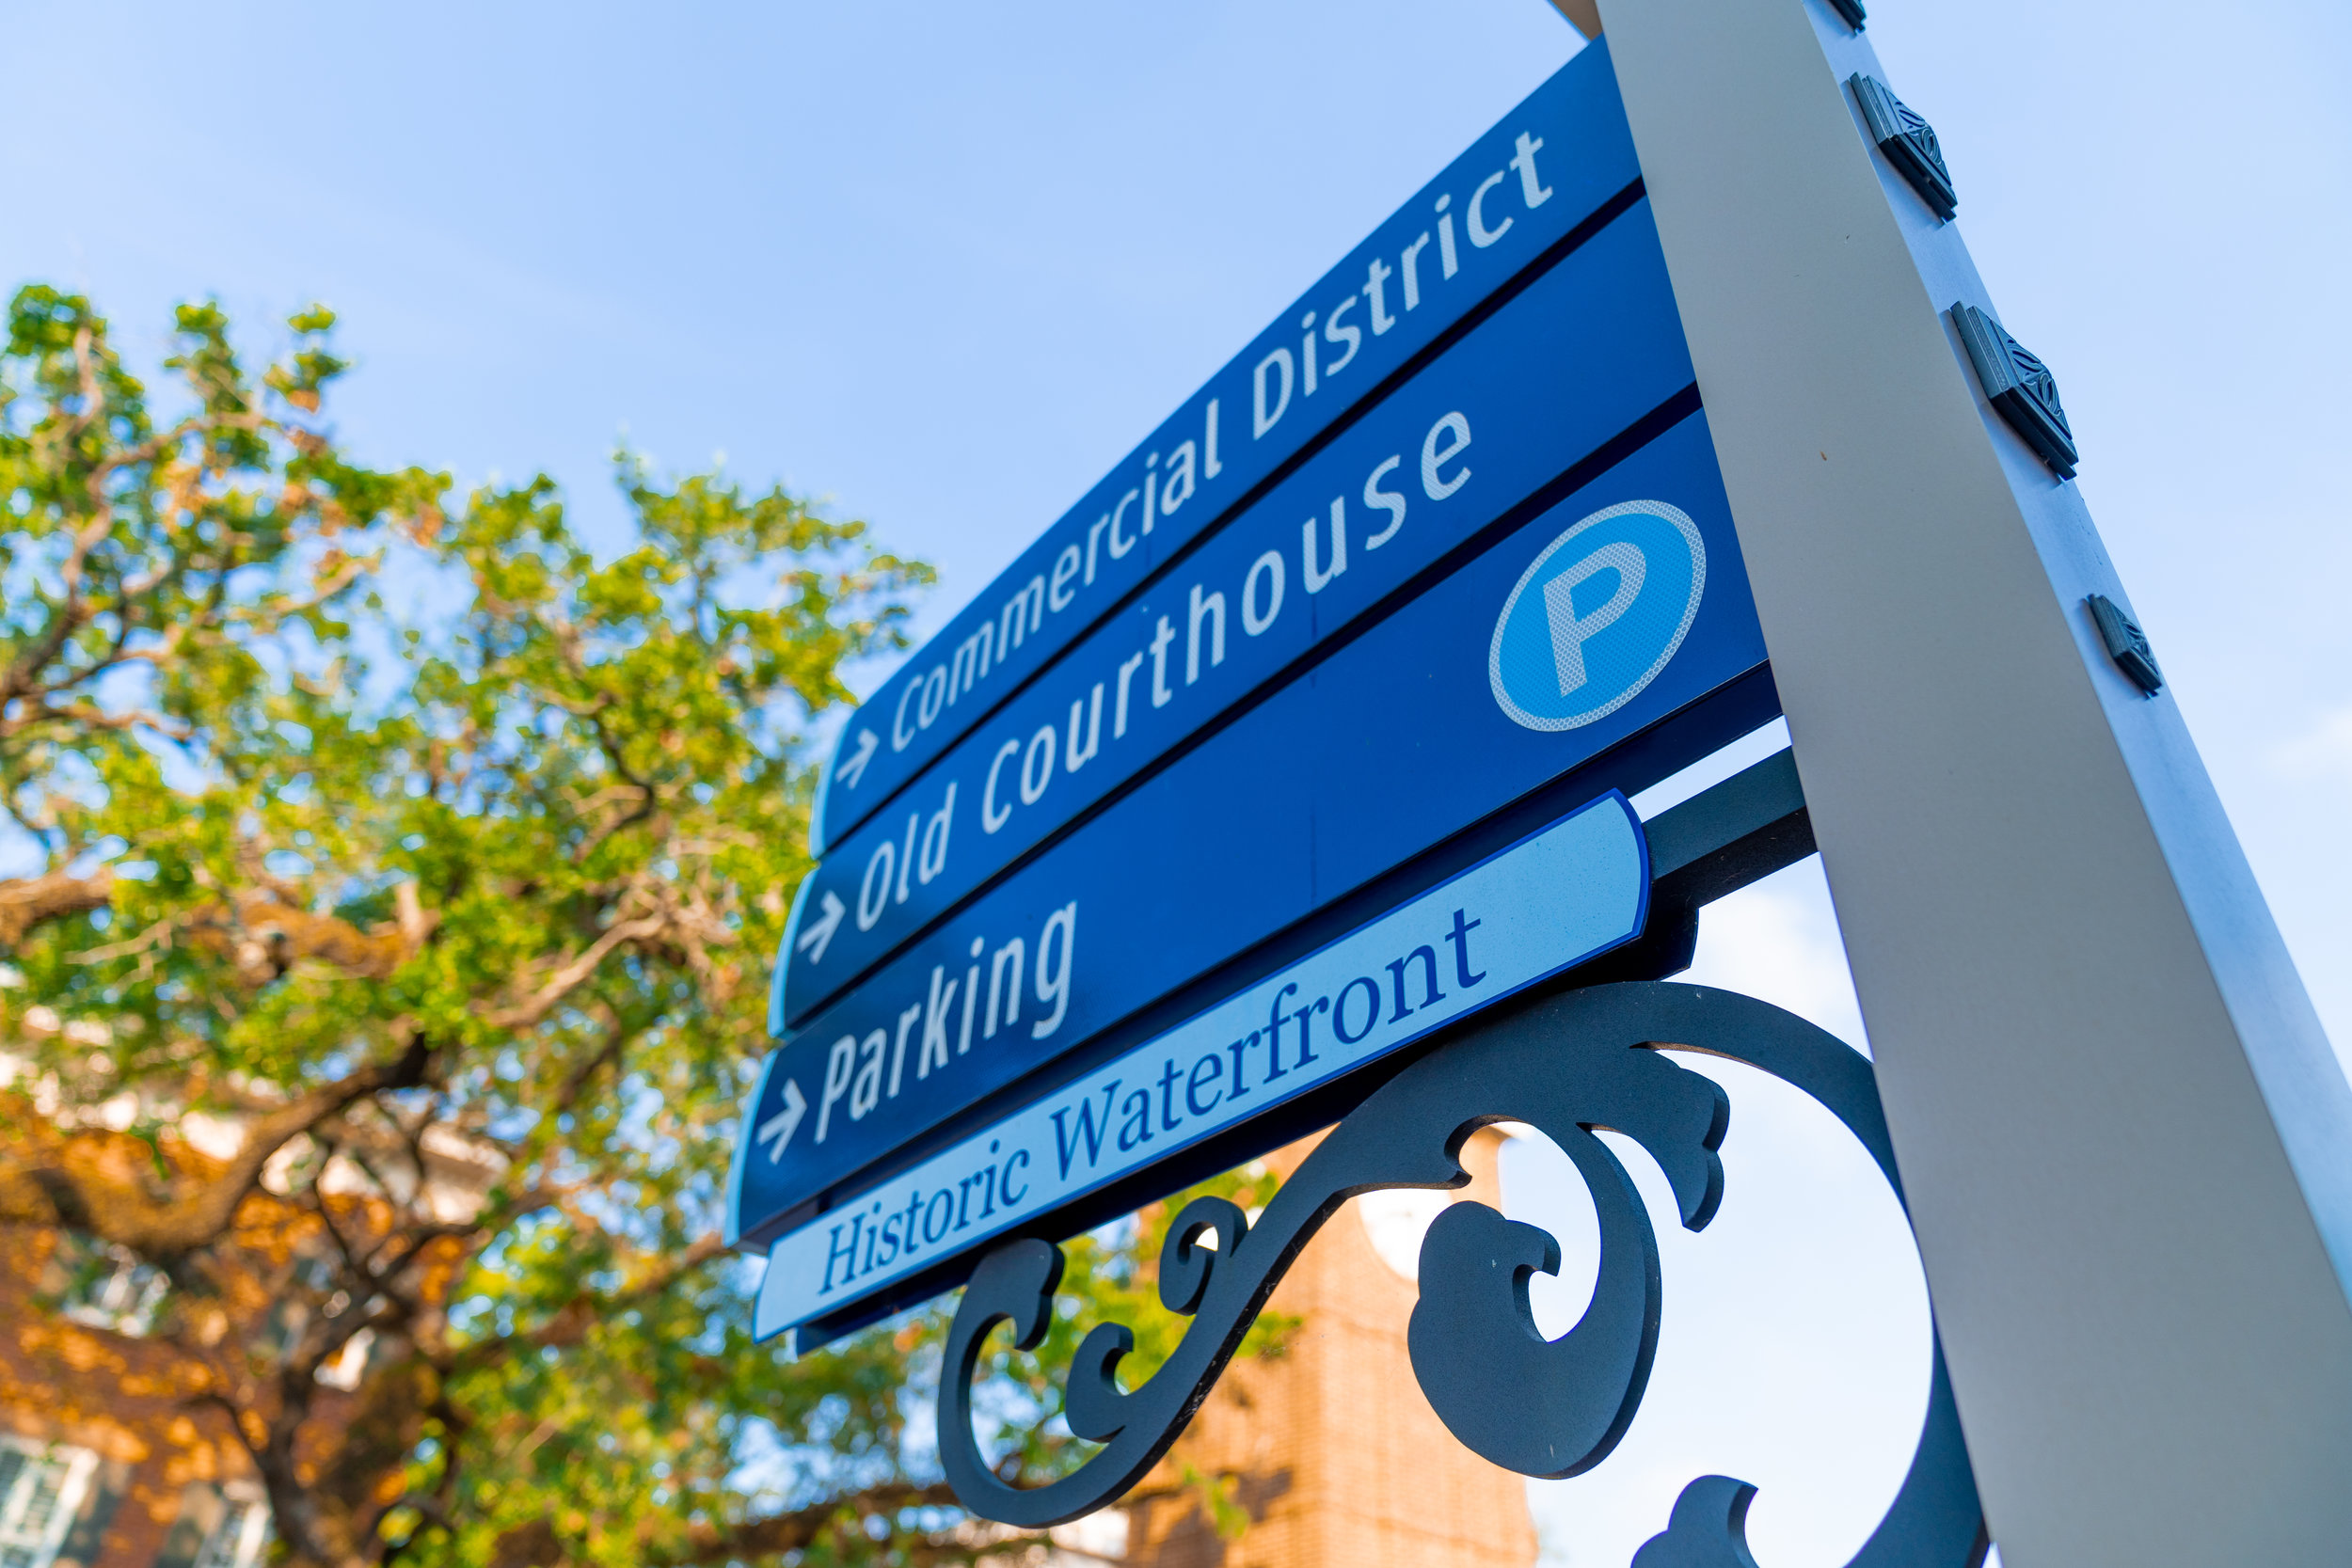 Georgetown_Wayfinding (7 of 34).jpg